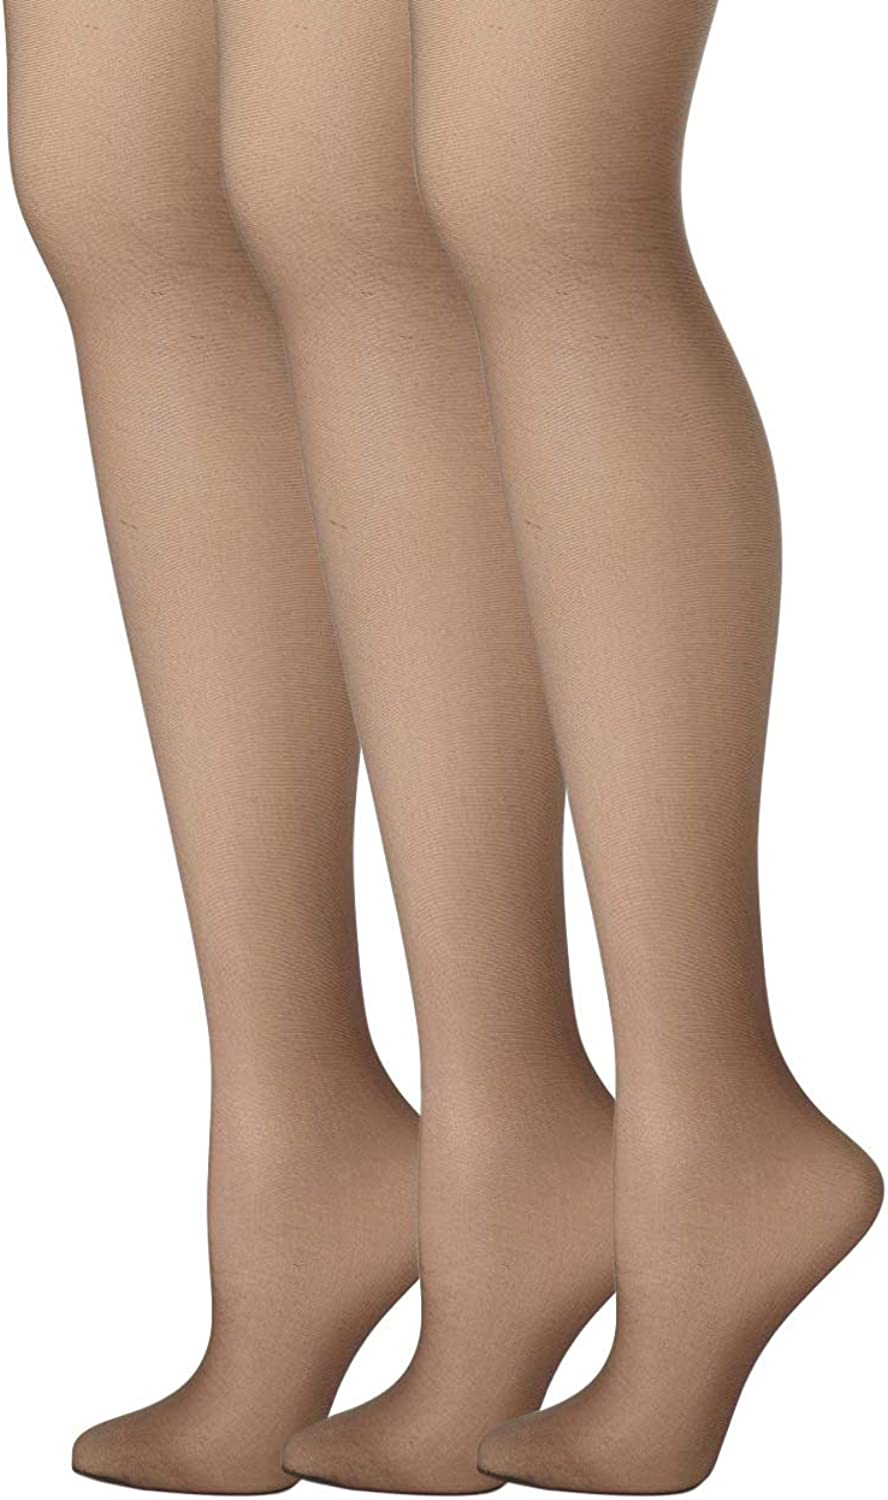 Hanes Silk Reflections Sandalfoot Barely There Thigh-High Stockings Size CD